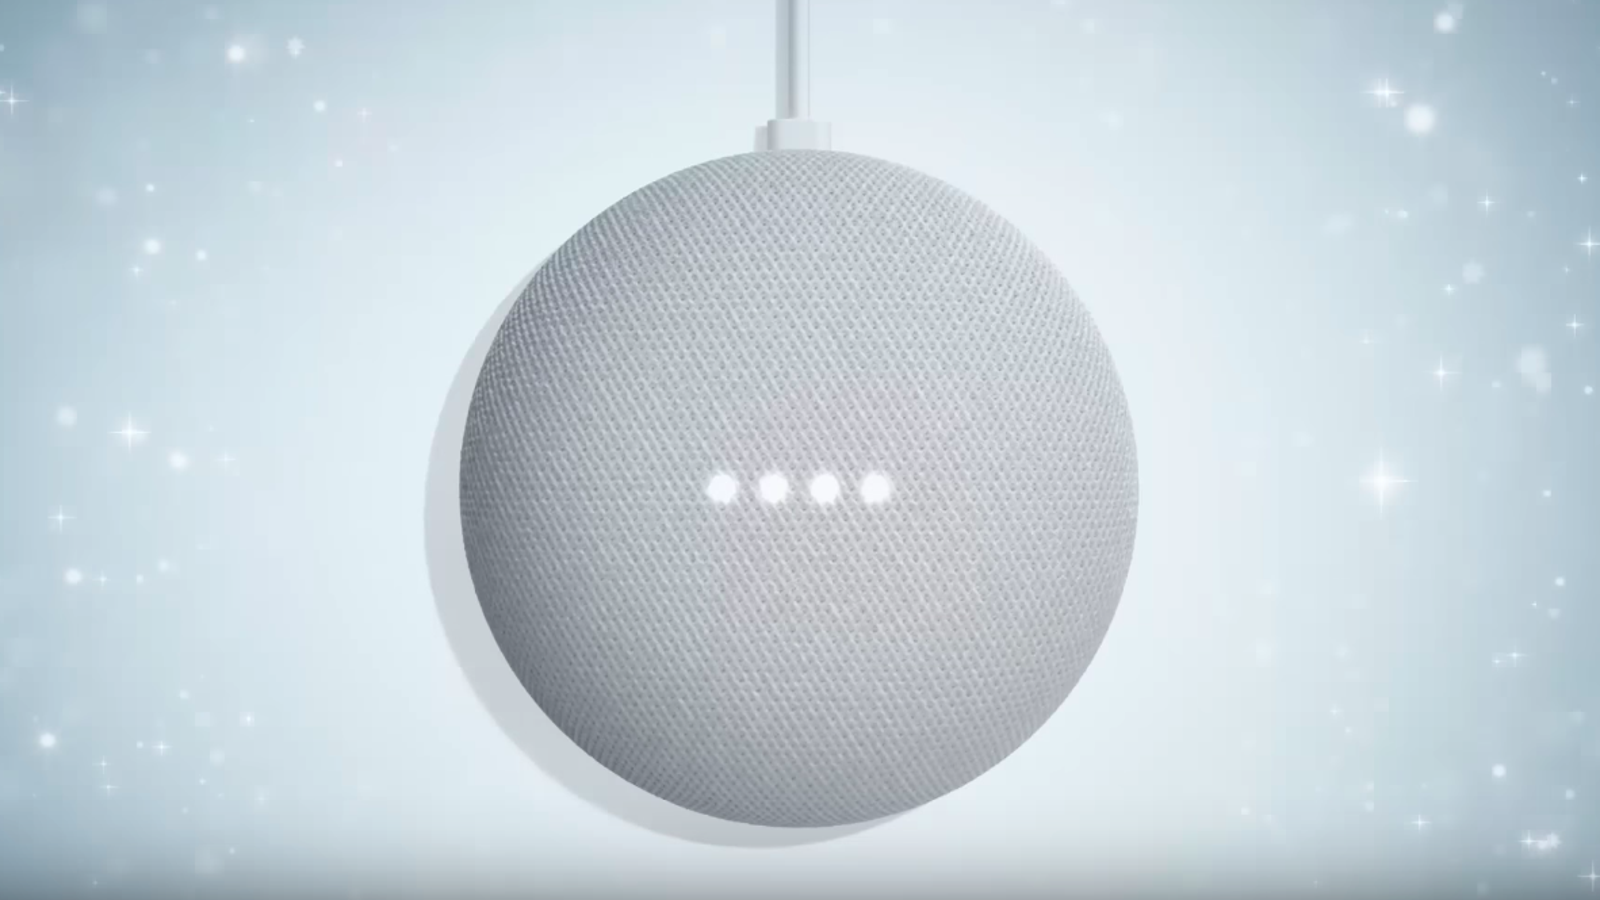 How to Talk to Santa Claus With Your Amazon Echo or Google Home